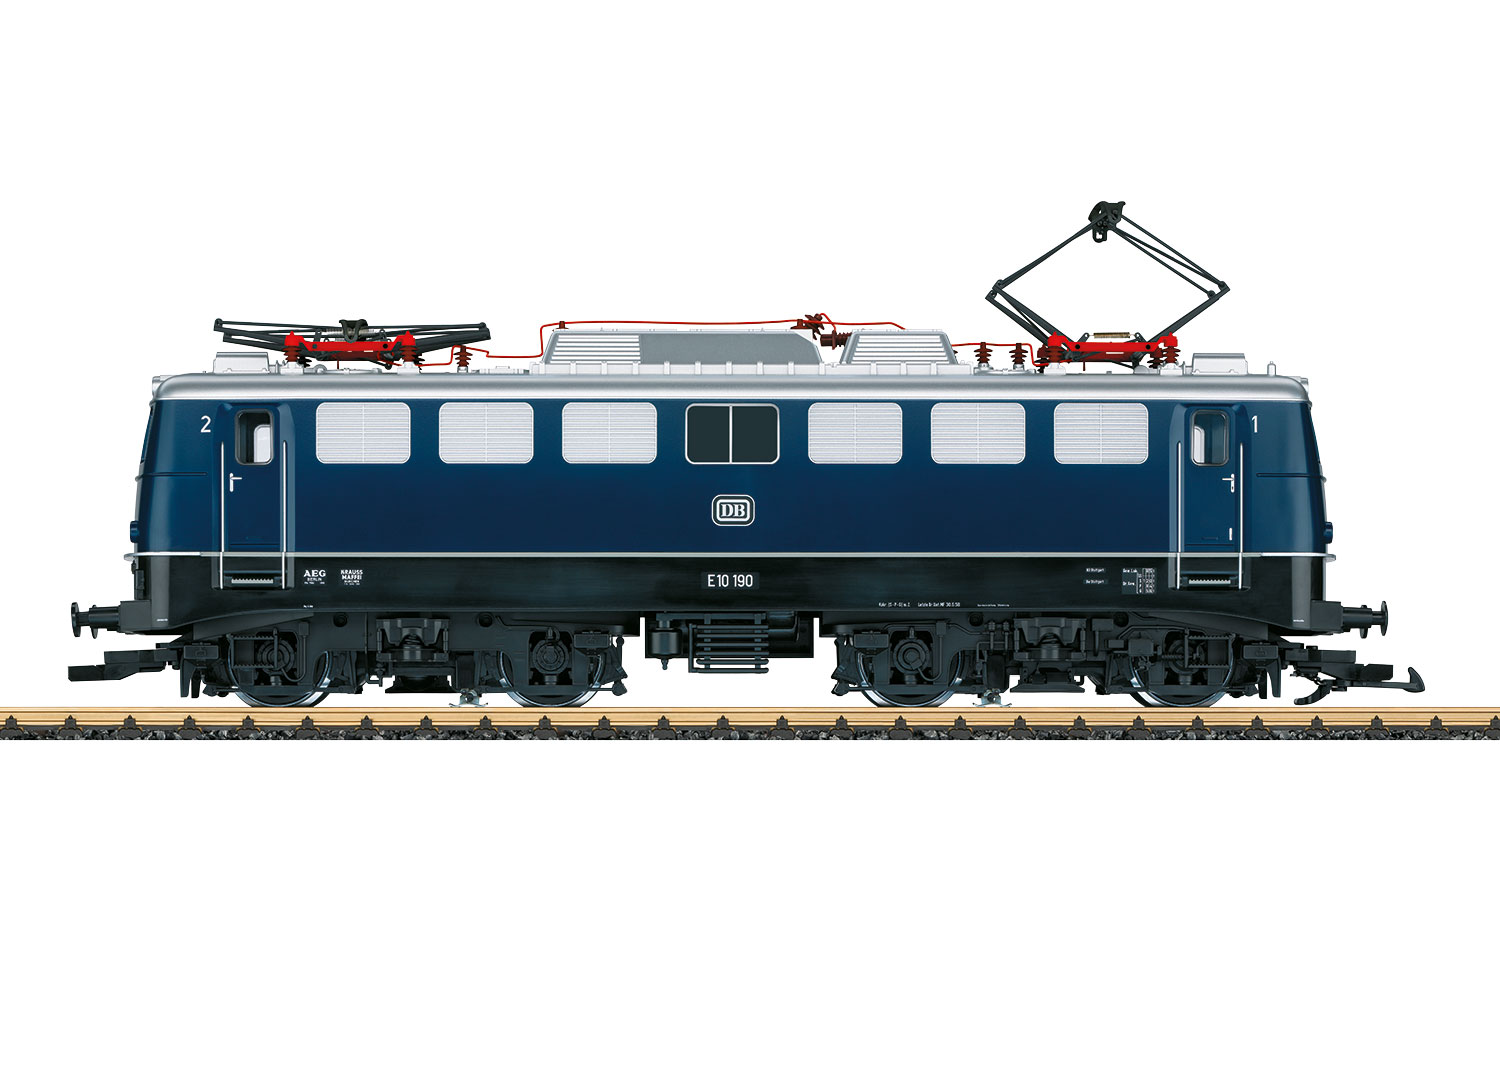 DB Era III E 10 Electric Locomotive